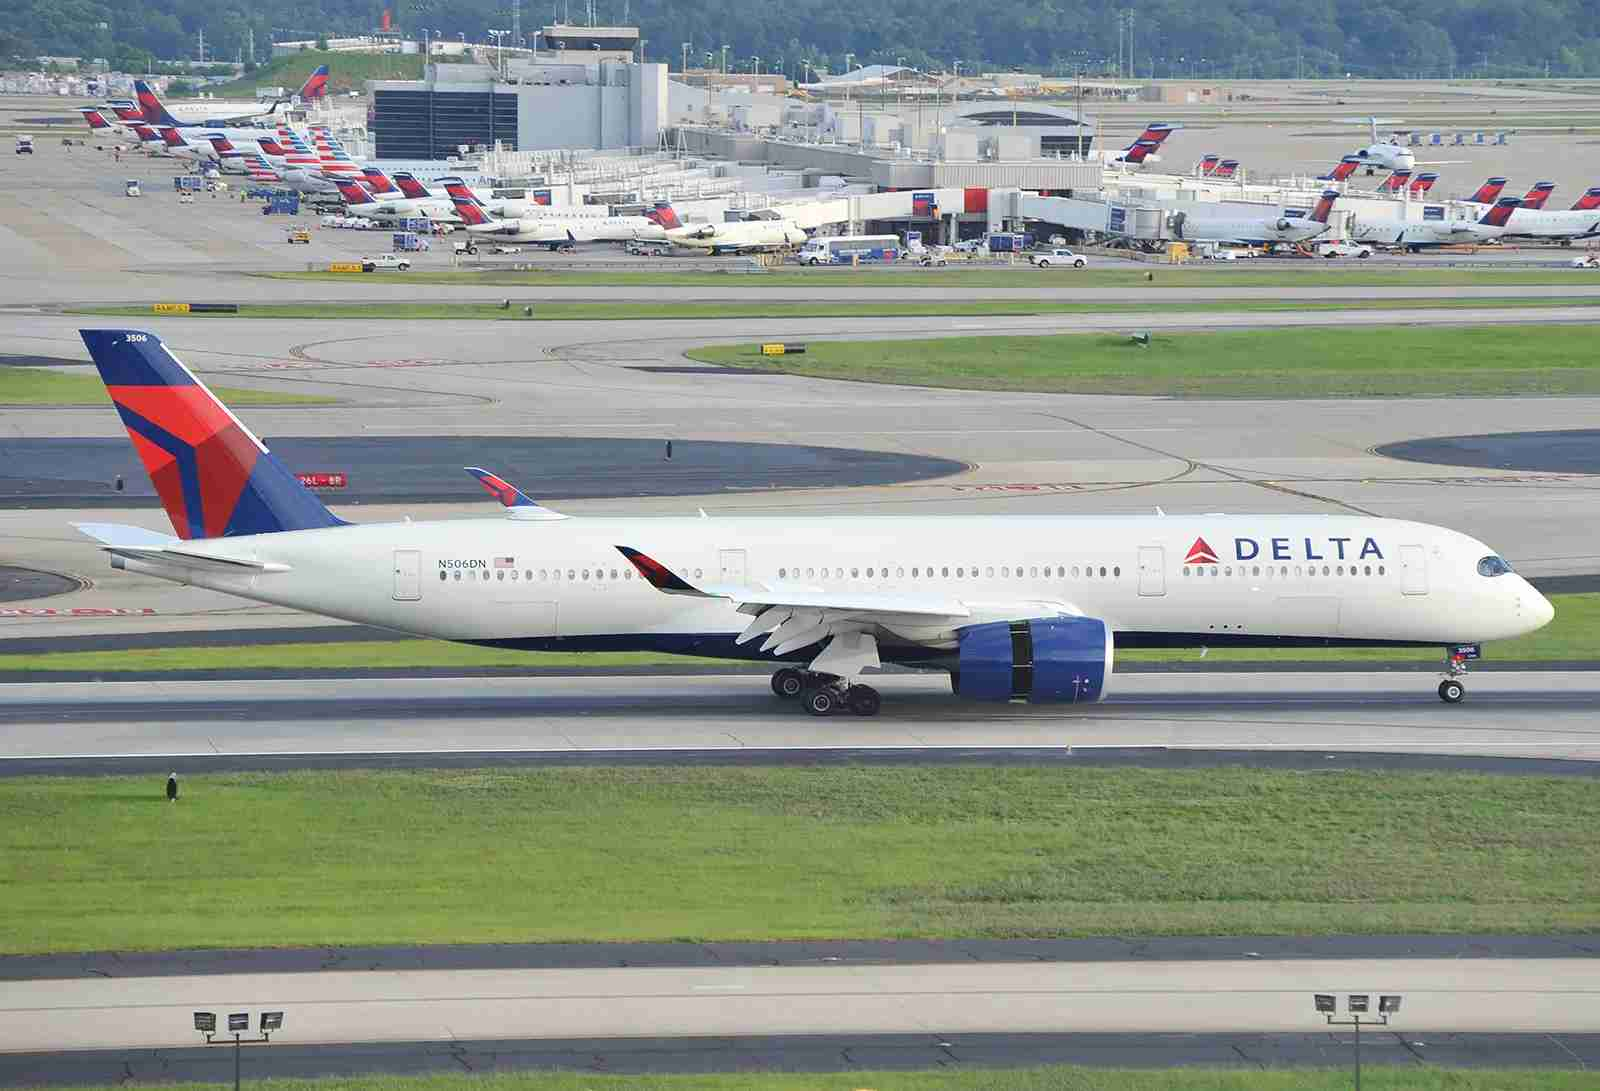 A Delta Airbus A350 at ATL (Photo by Alberto Riva/The Points Guy)